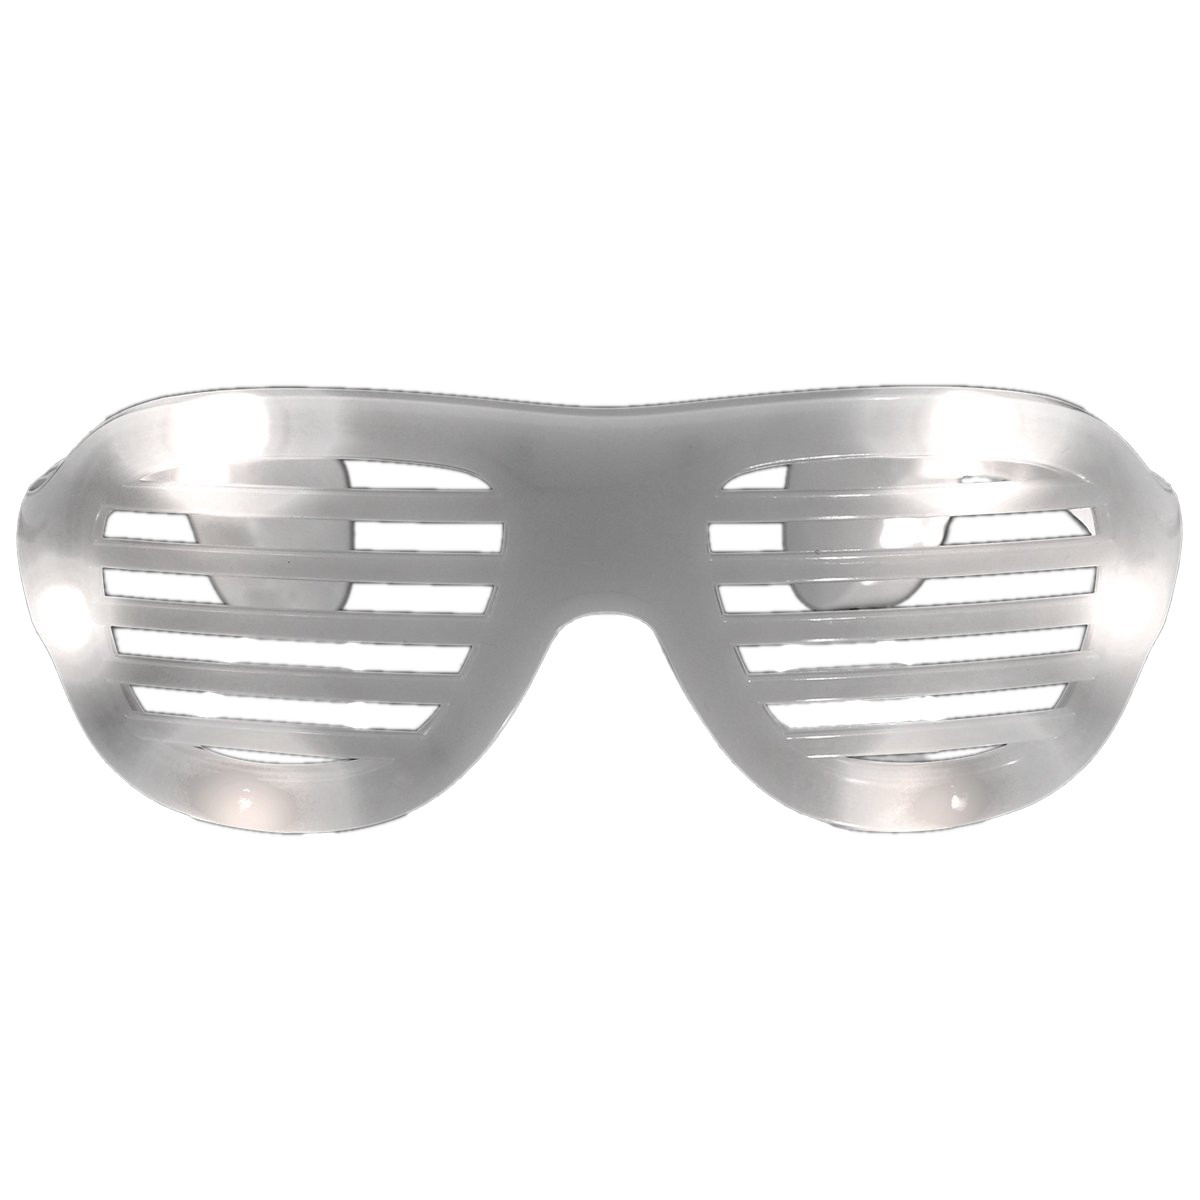 LED Hip Hop Shutter Shades Sunglasses White All Products